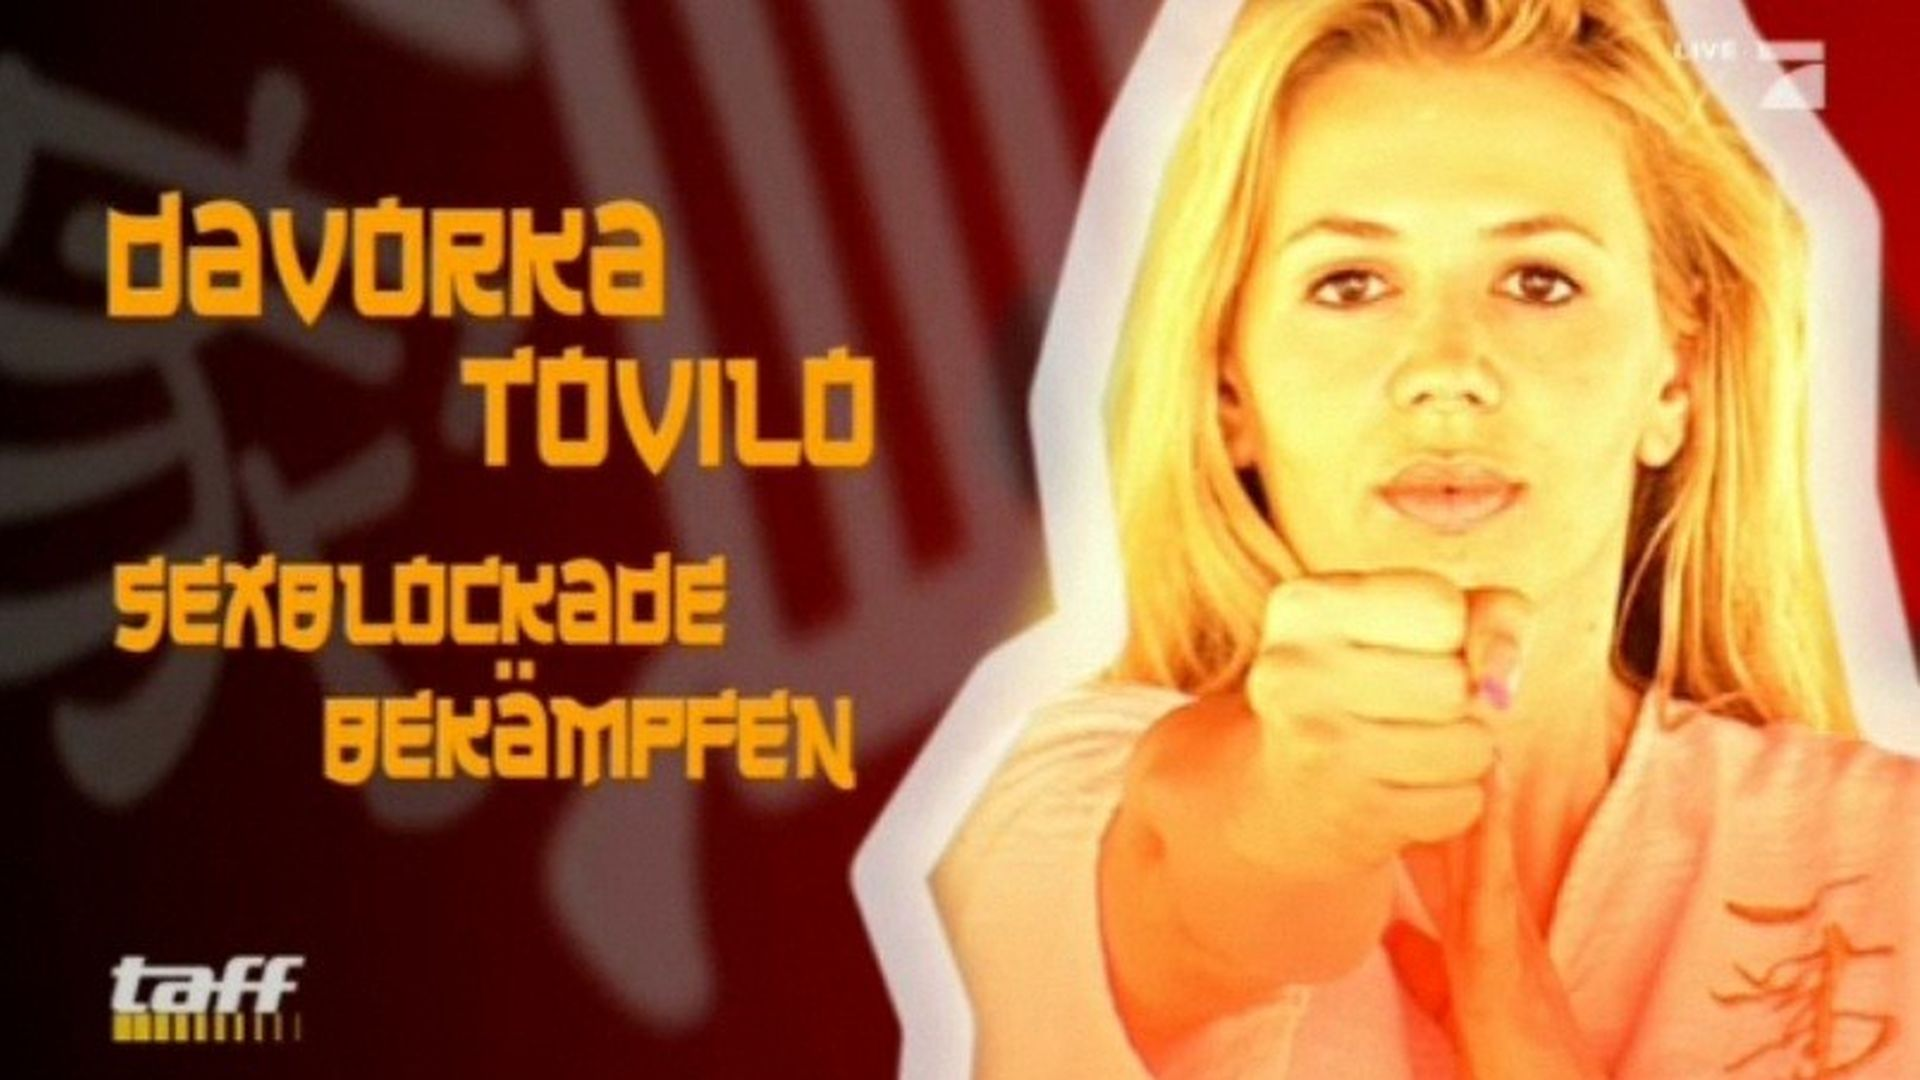 Sexy Jamilla Hoogenboom nude (67 foto and video), Ass, Fappening, Twitter, cleavage 2006